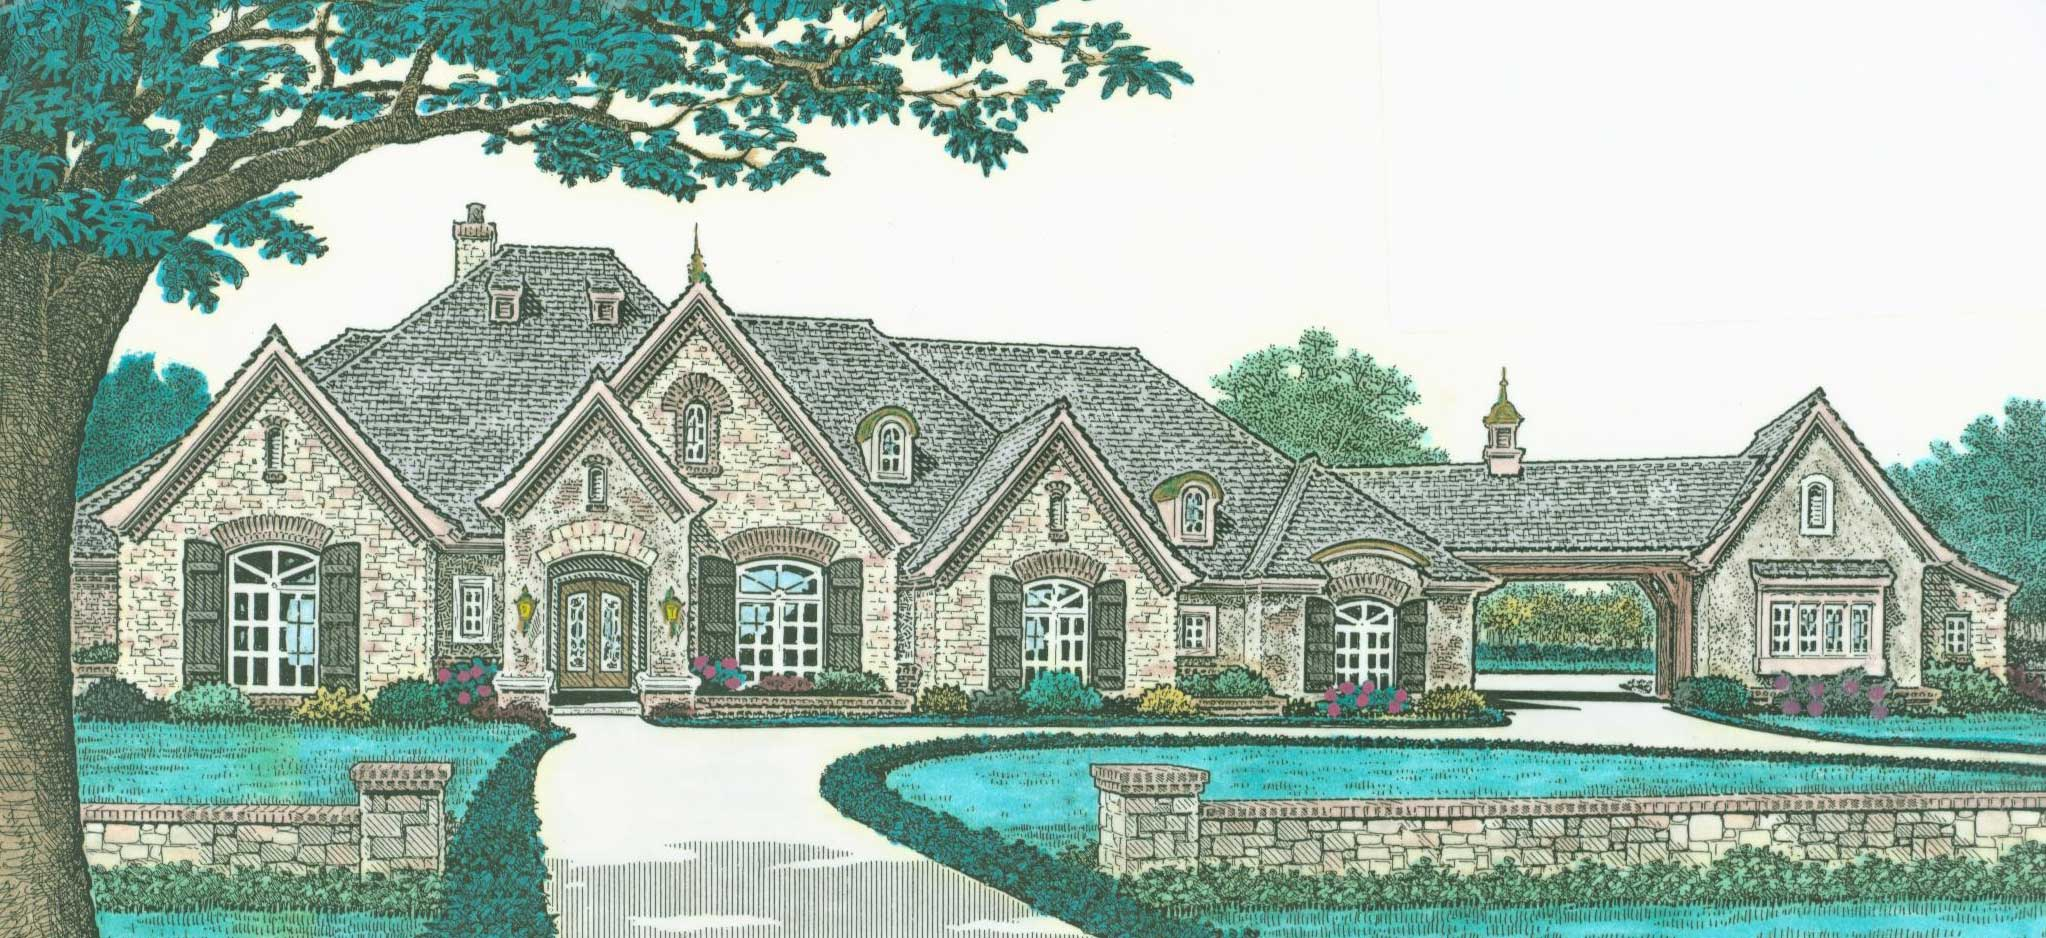 House plans by fillmore design group for Local home design